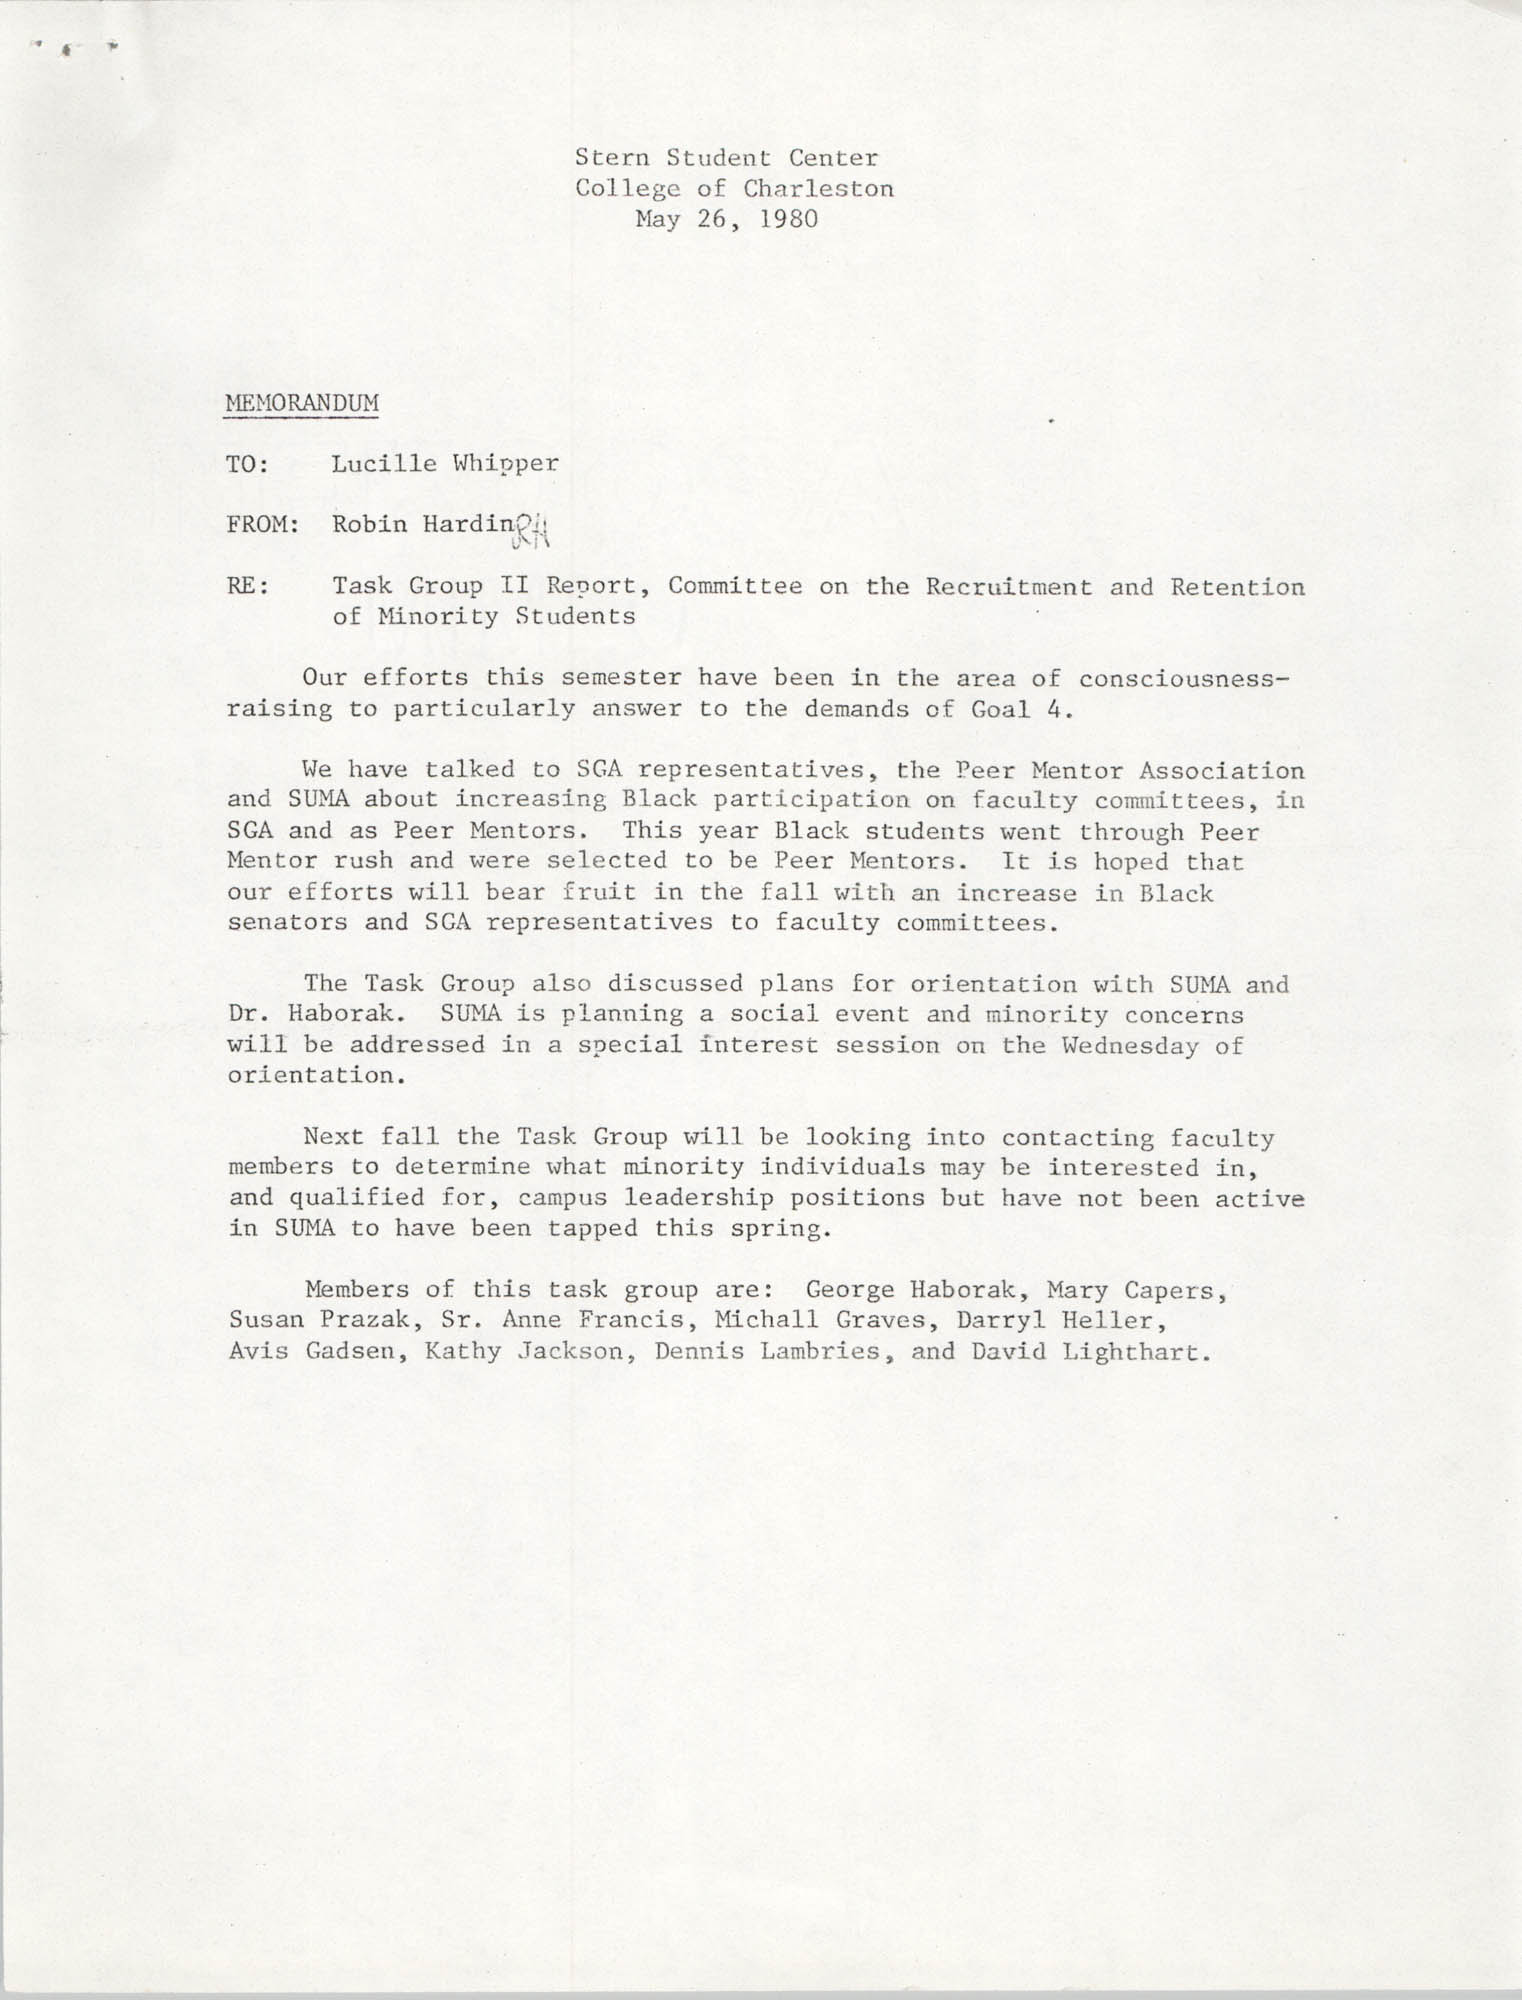 College of Charleston Memorandum, May 26, 1980